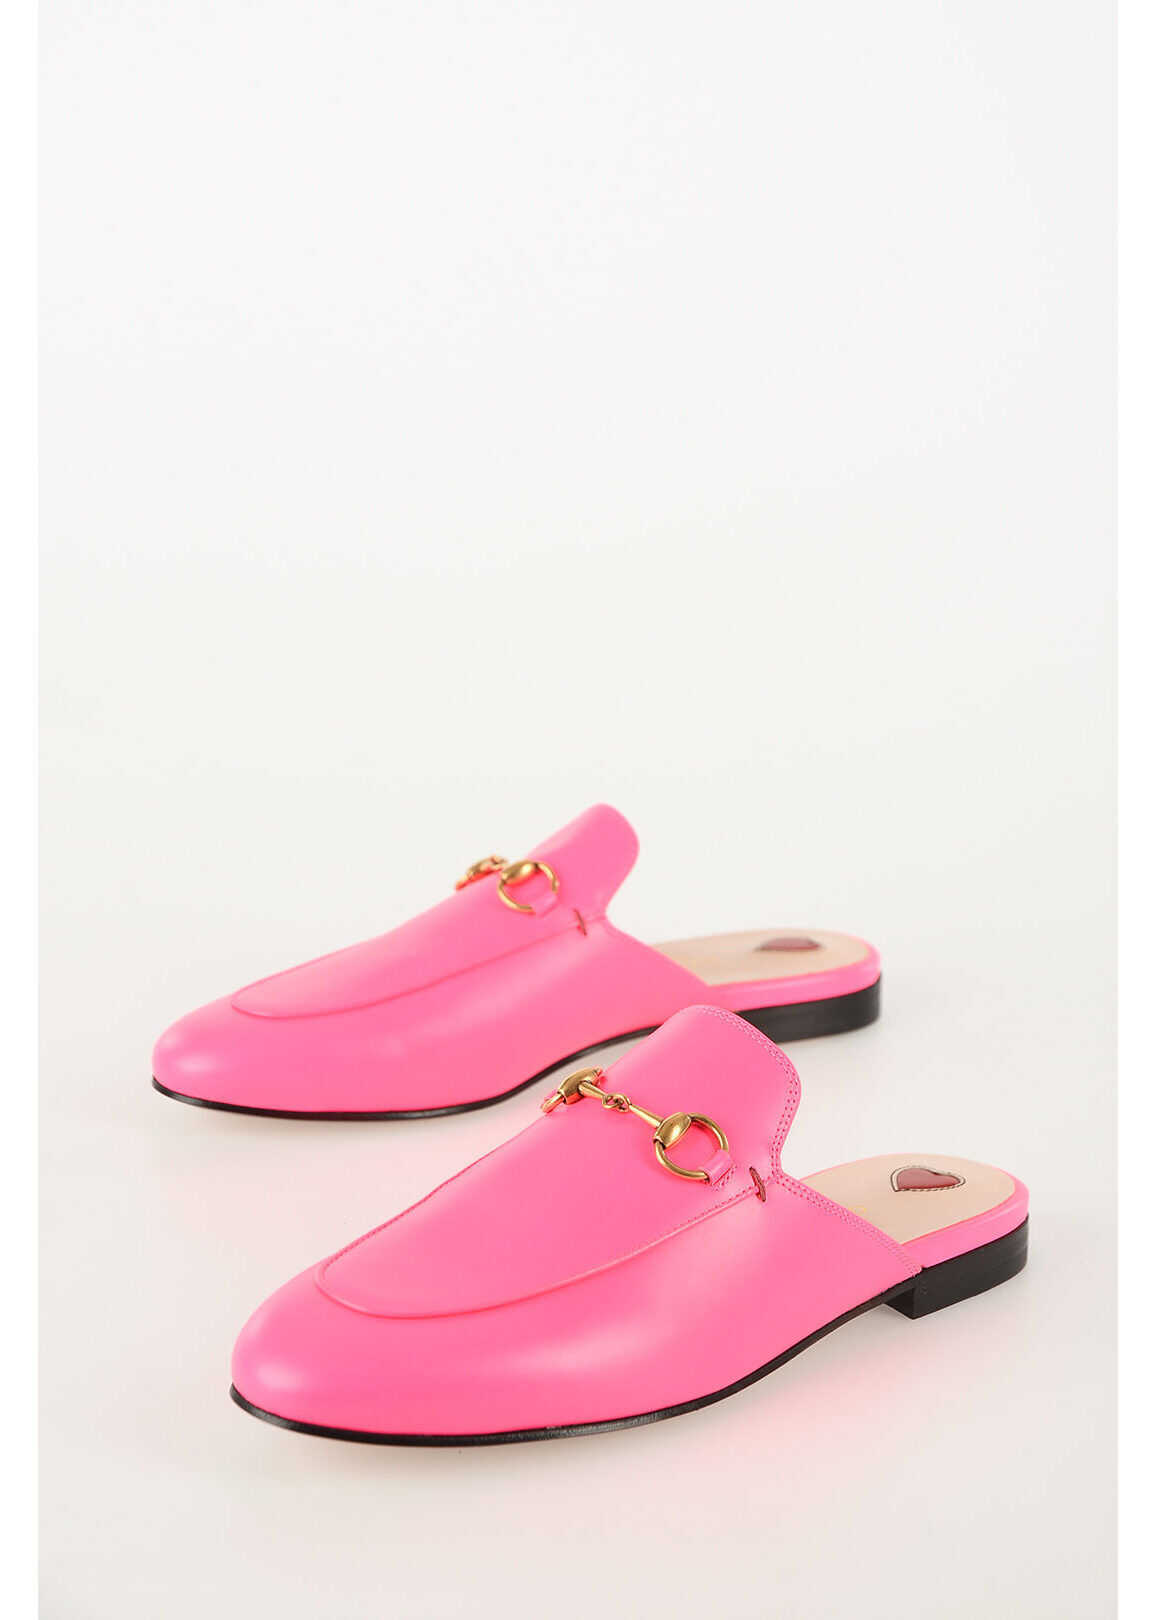 Gucci Leather Sabot PINK